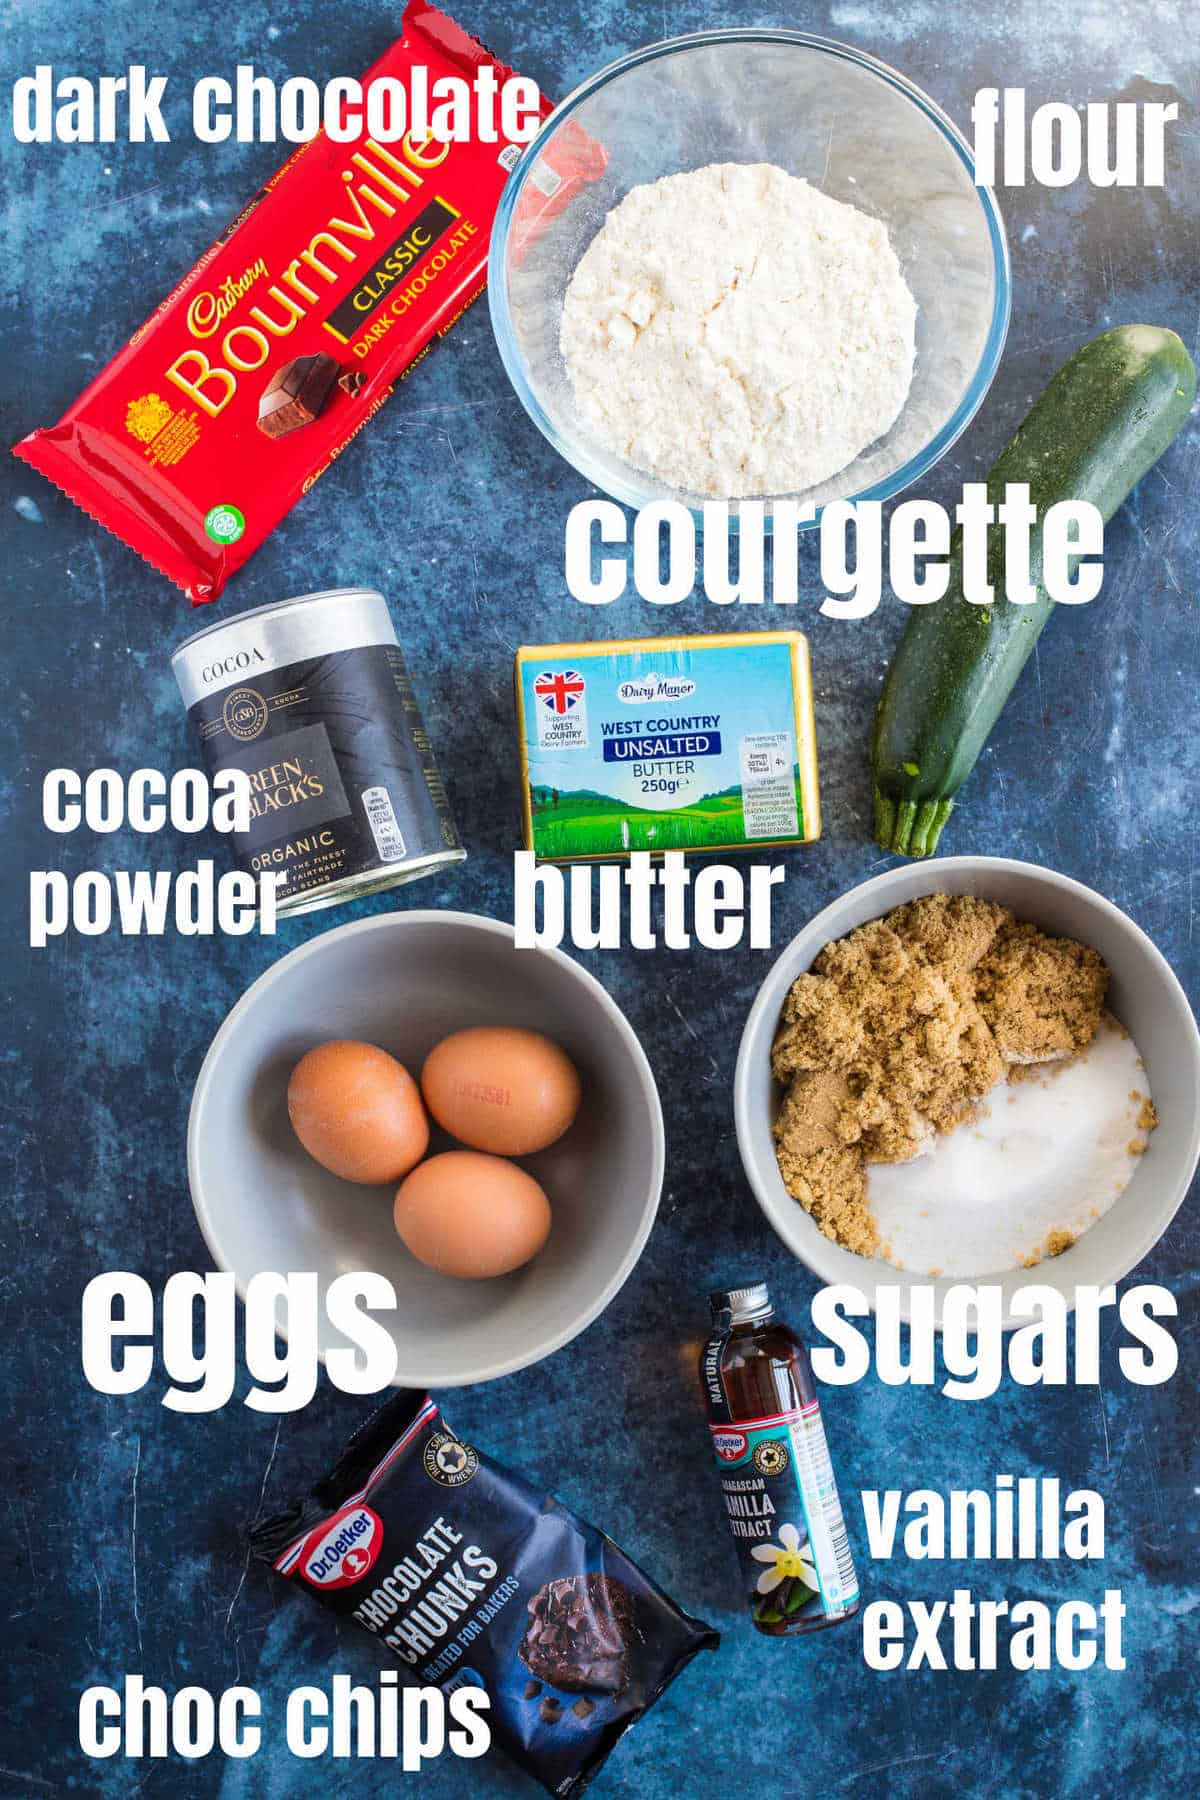 Ingredients for the courgette (zucchini) brownies).